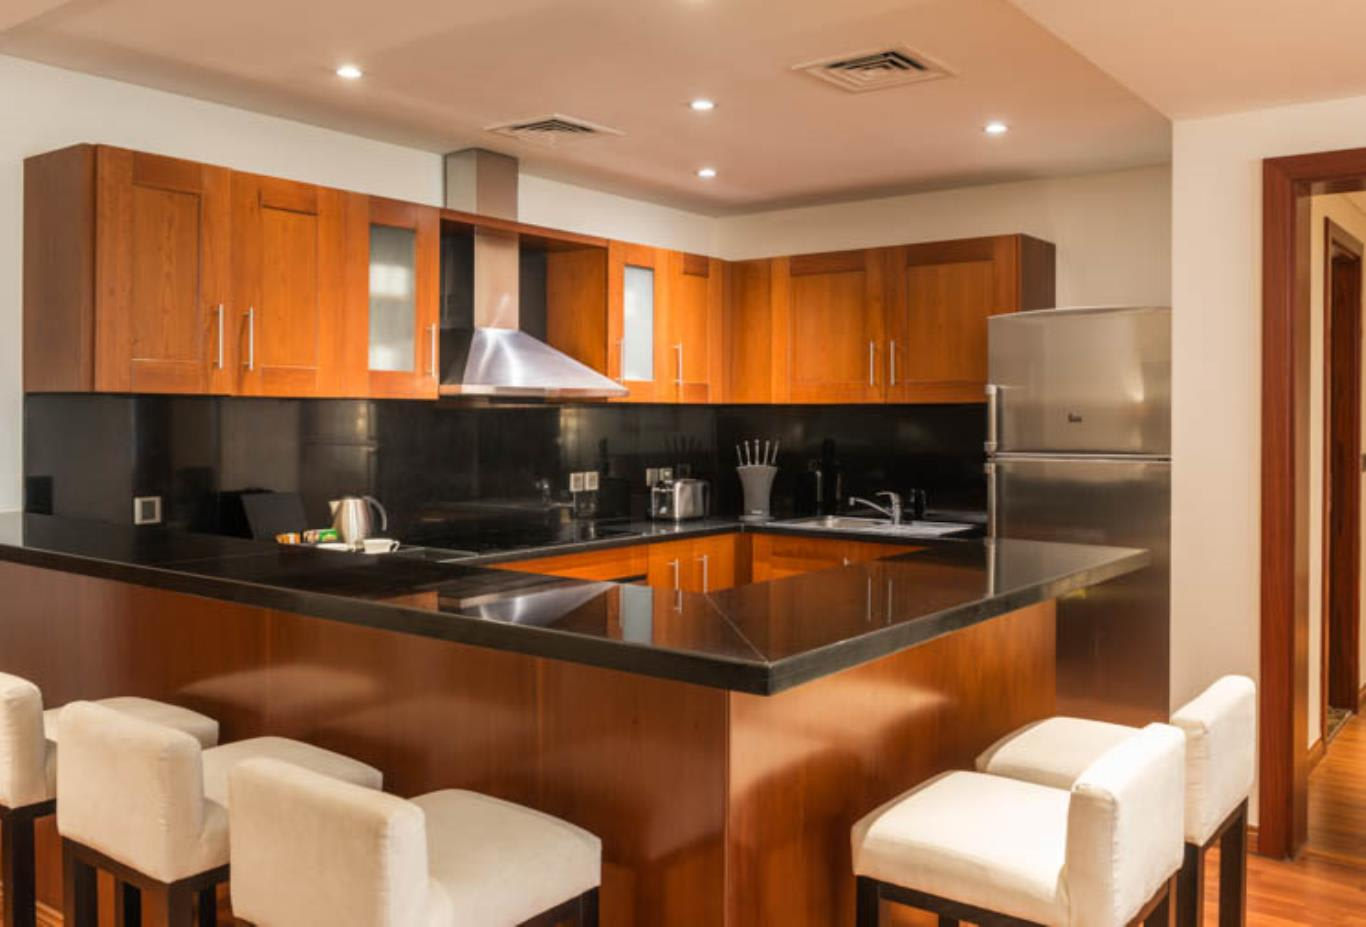 3 Bedroom Residence Apartment Kitchen